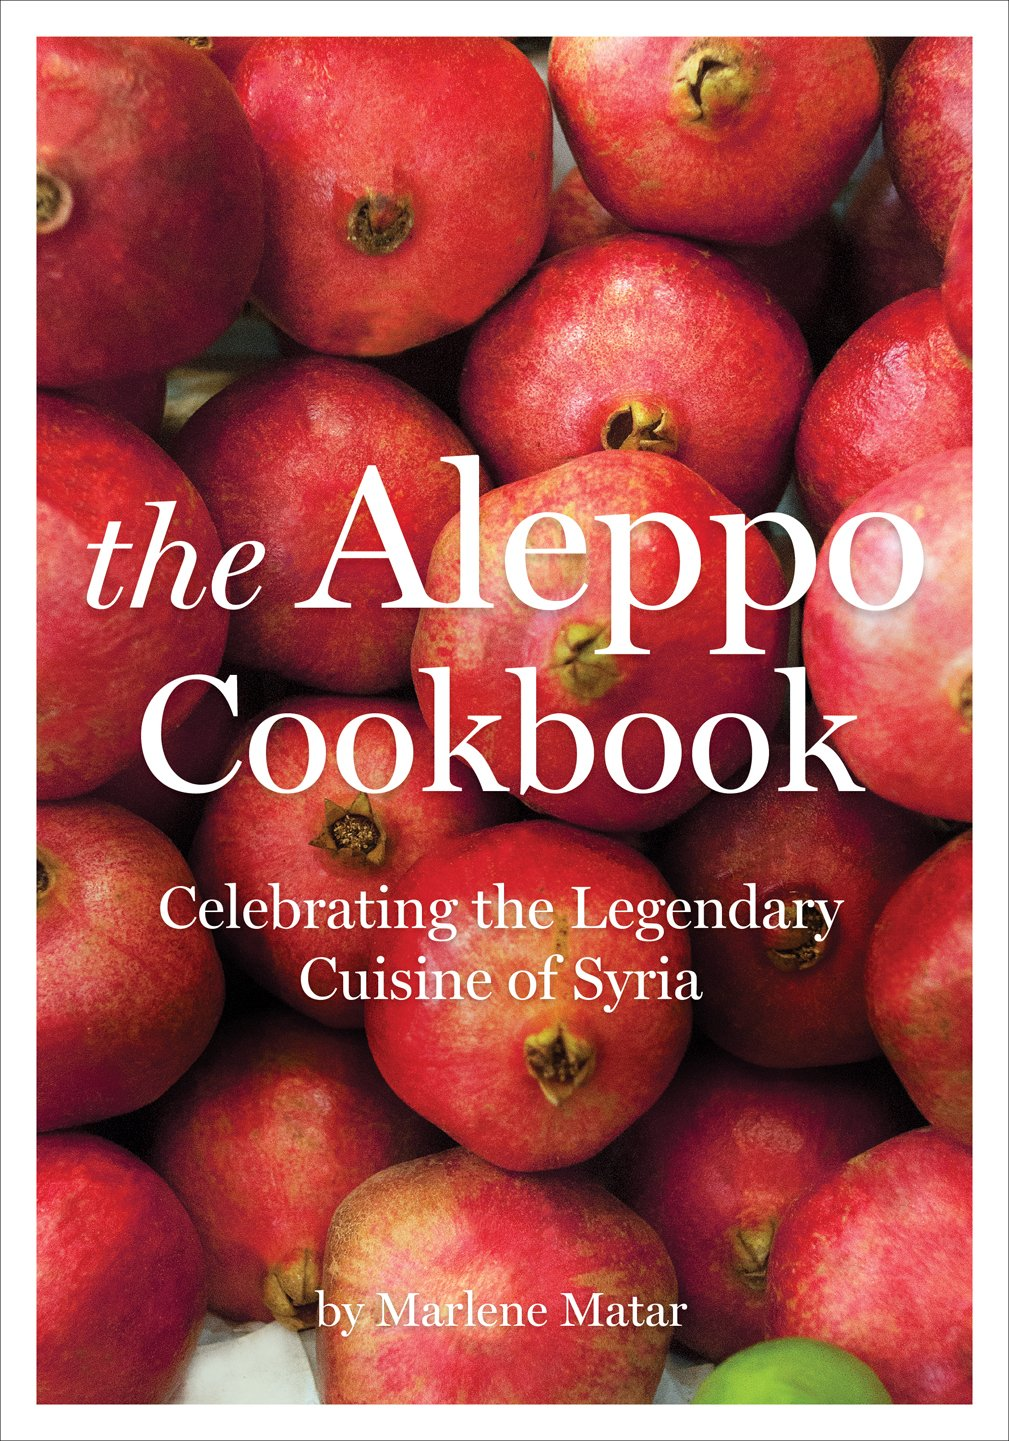 The Aleppo Cookbook: Celebrating the Legendary Cuisine of